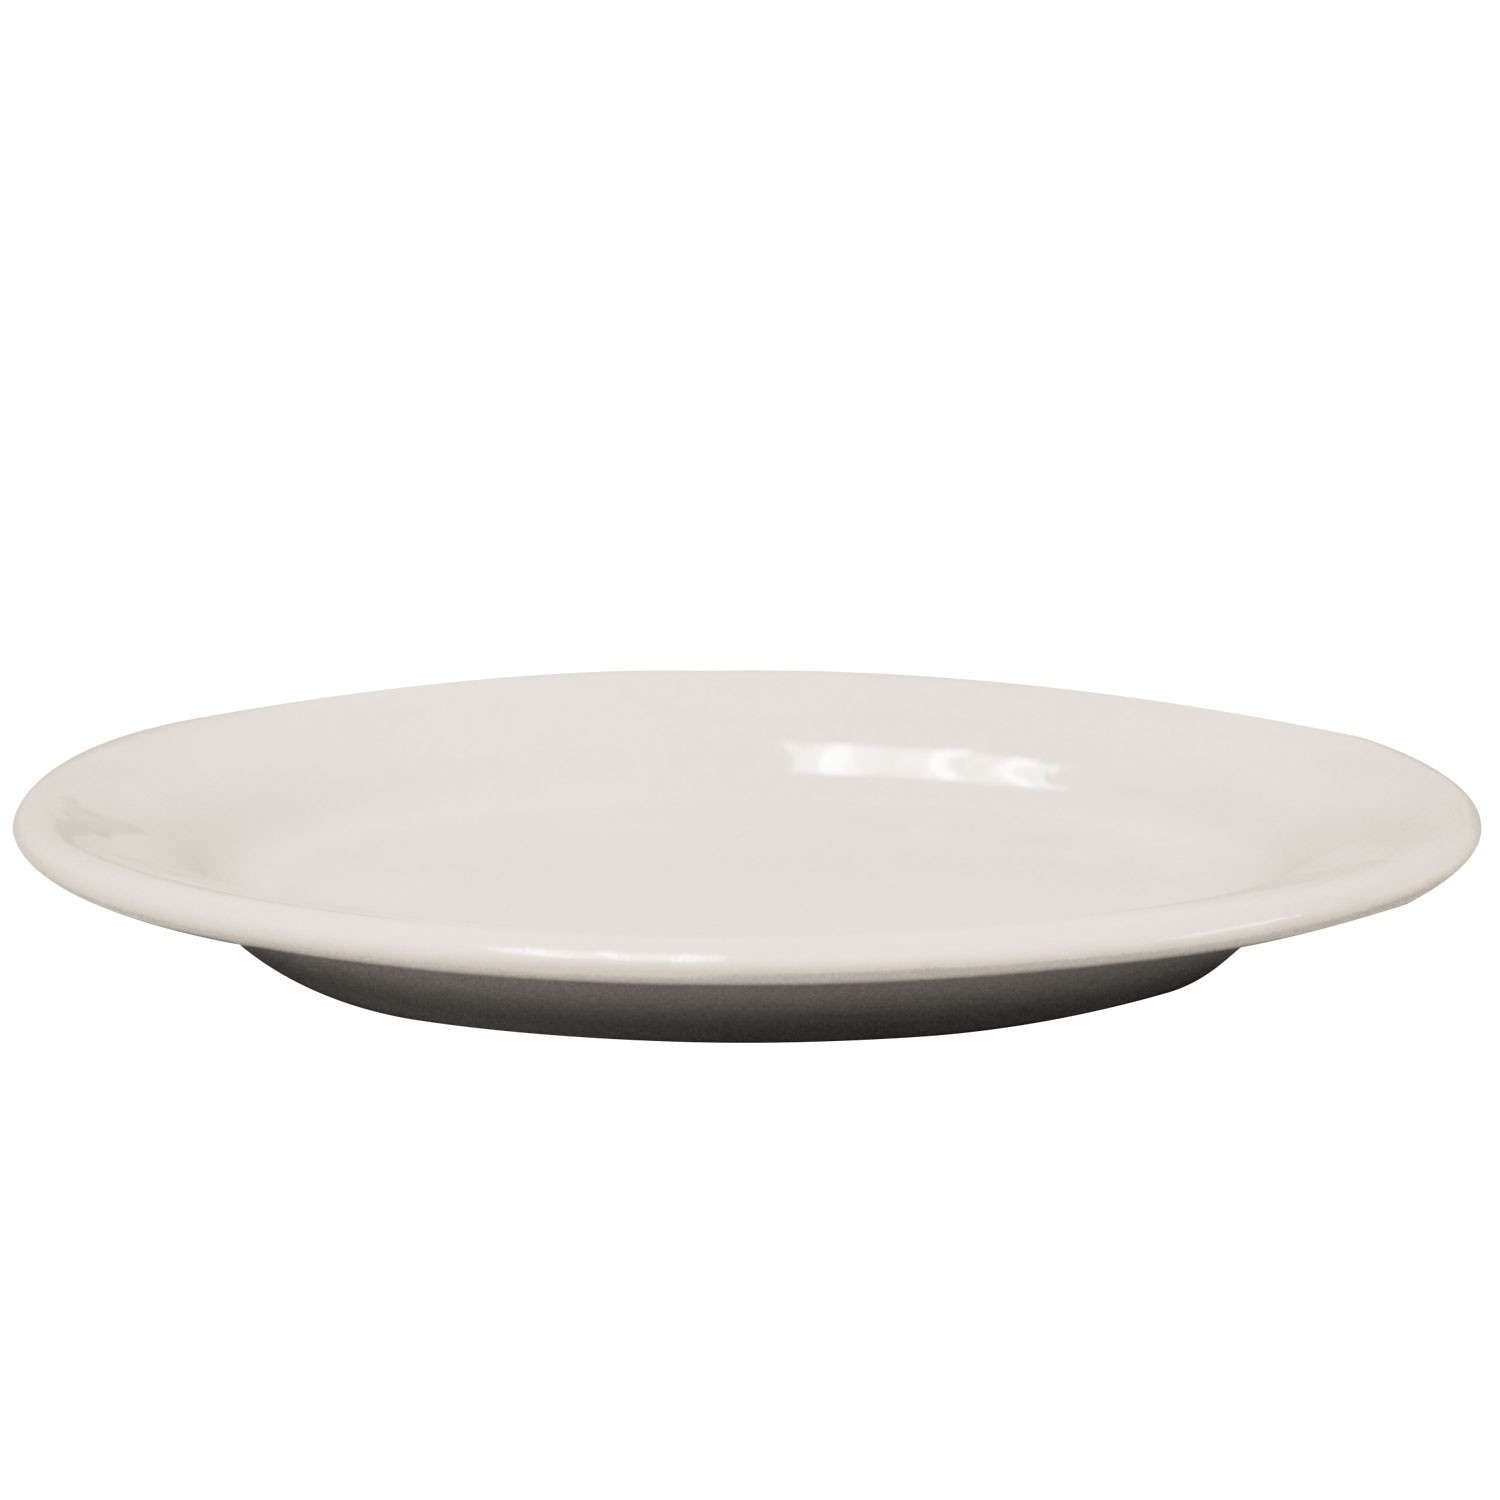 Vertex China BRE-34 Platter - 2 doz